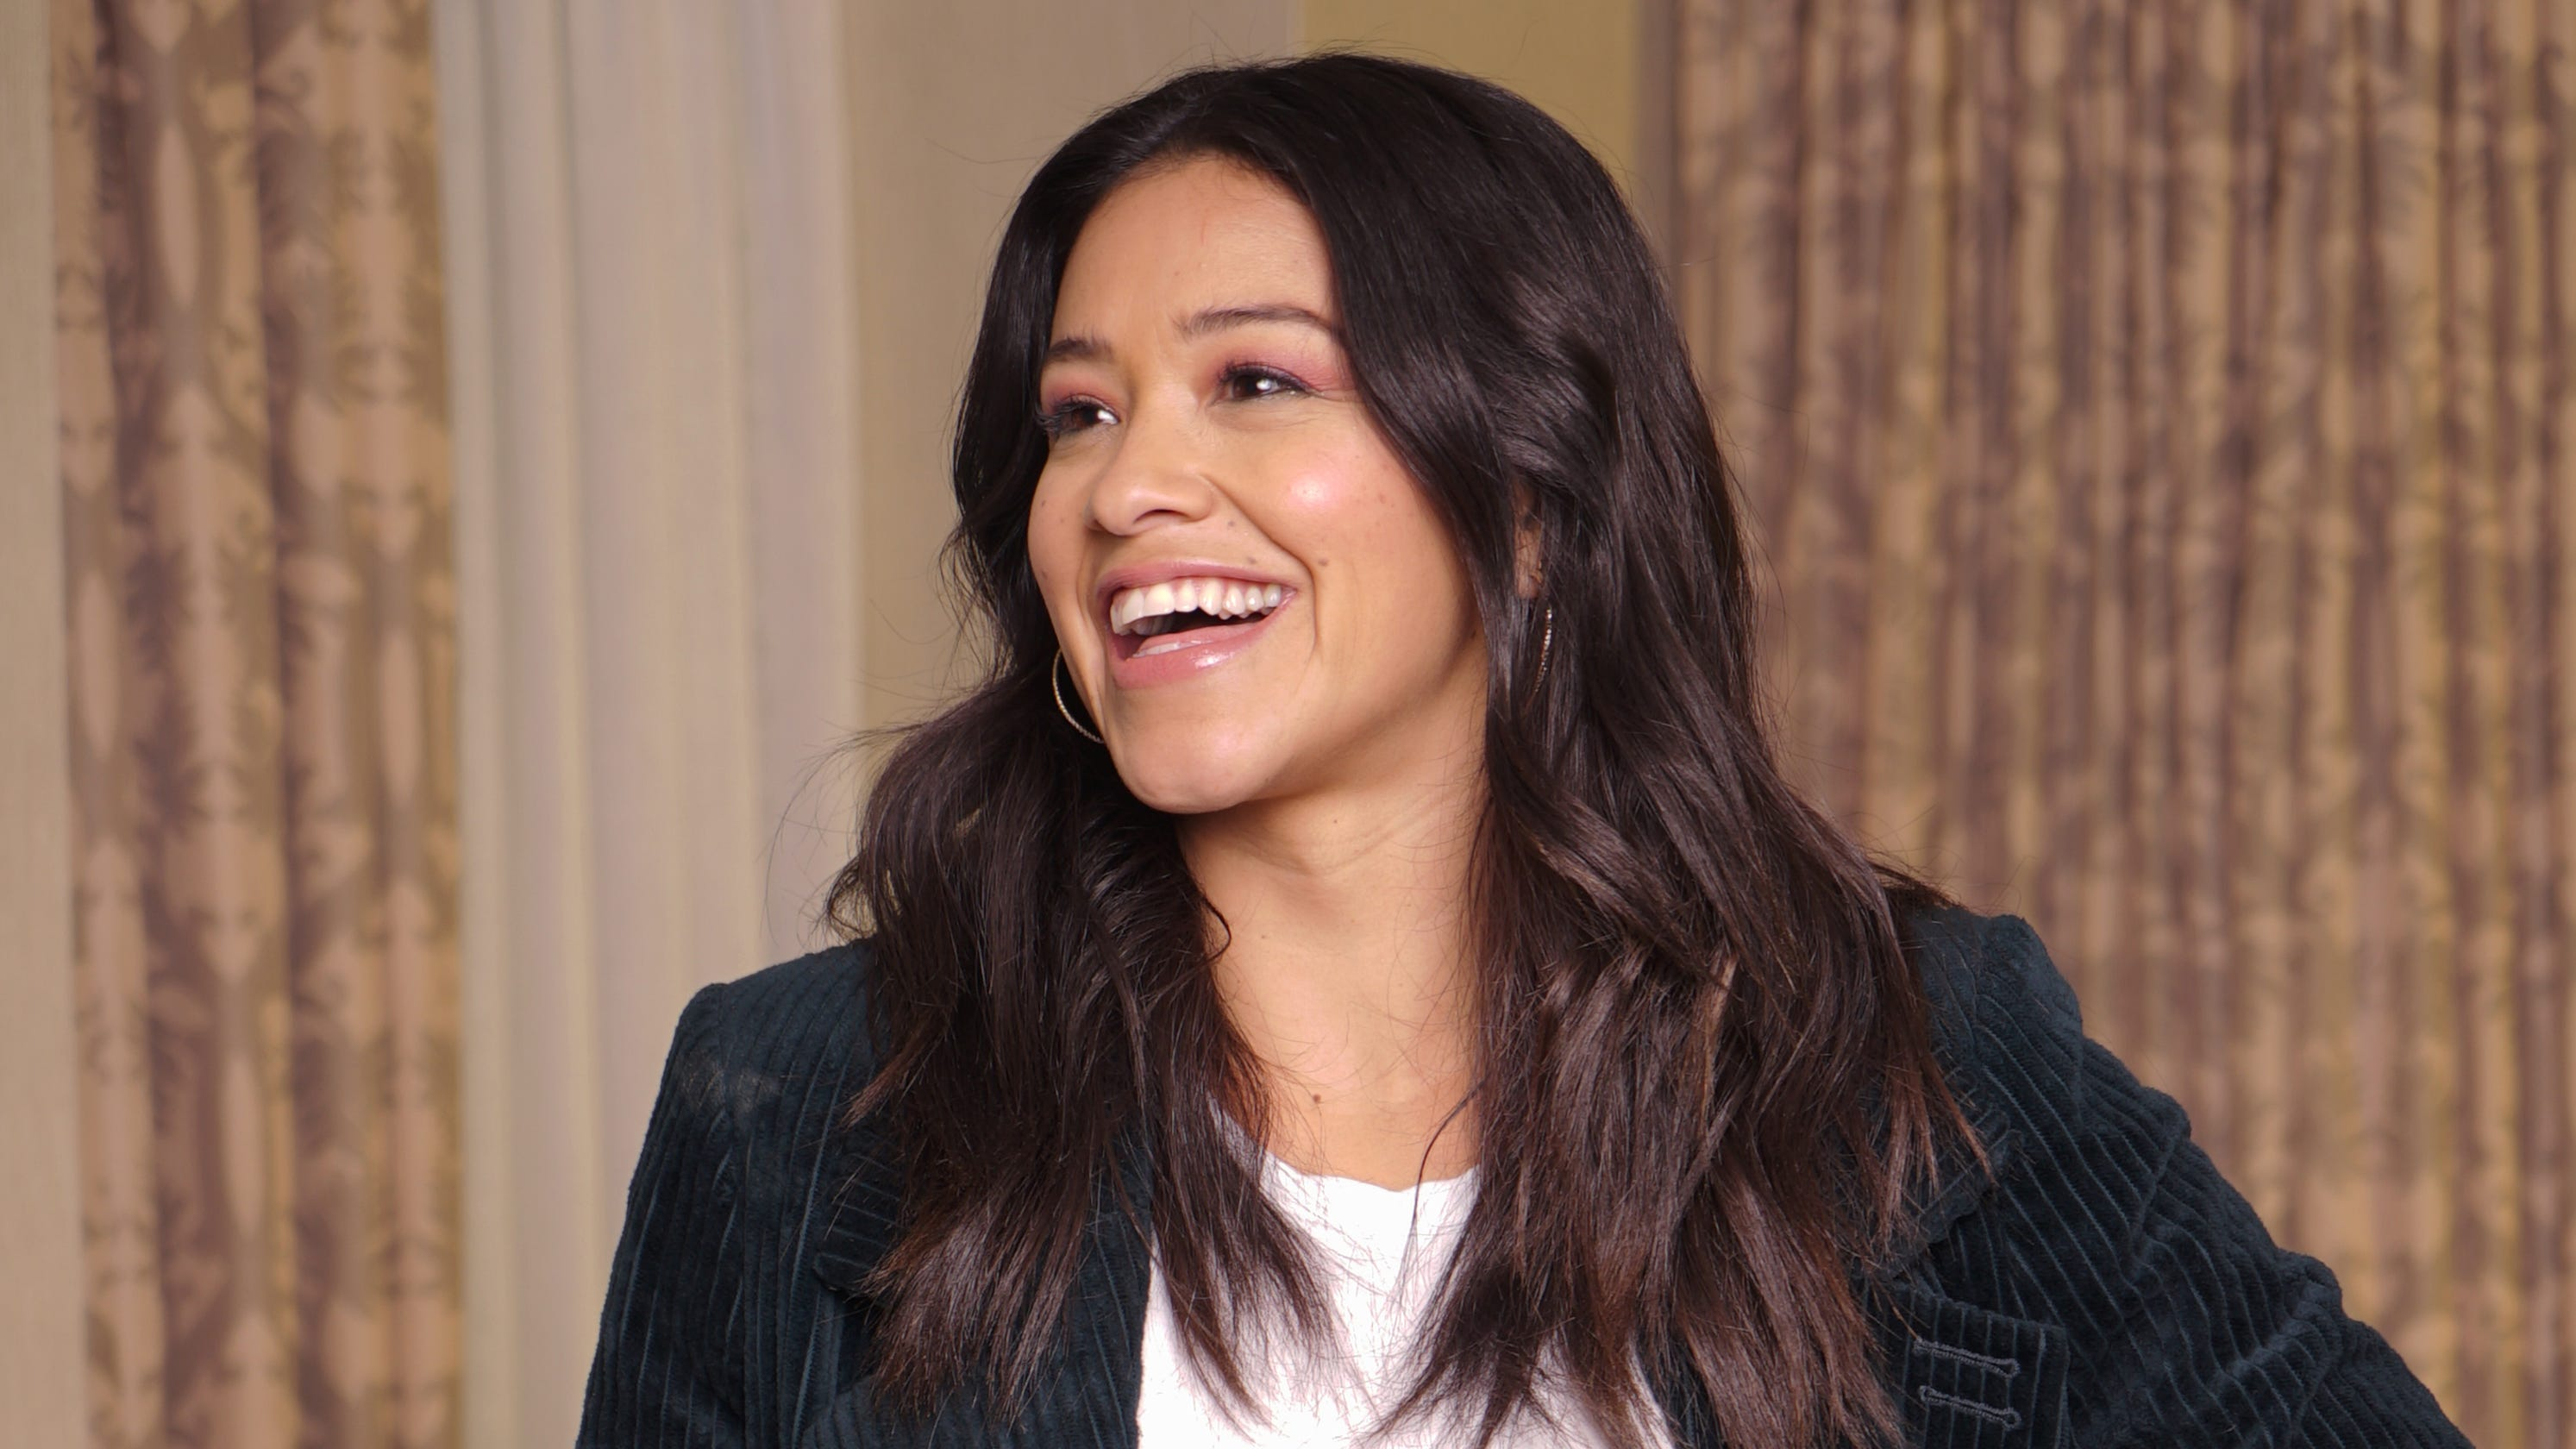 Gina Rodriguez: From 'Jane the Virgin' to 'Miss Bala' movie star